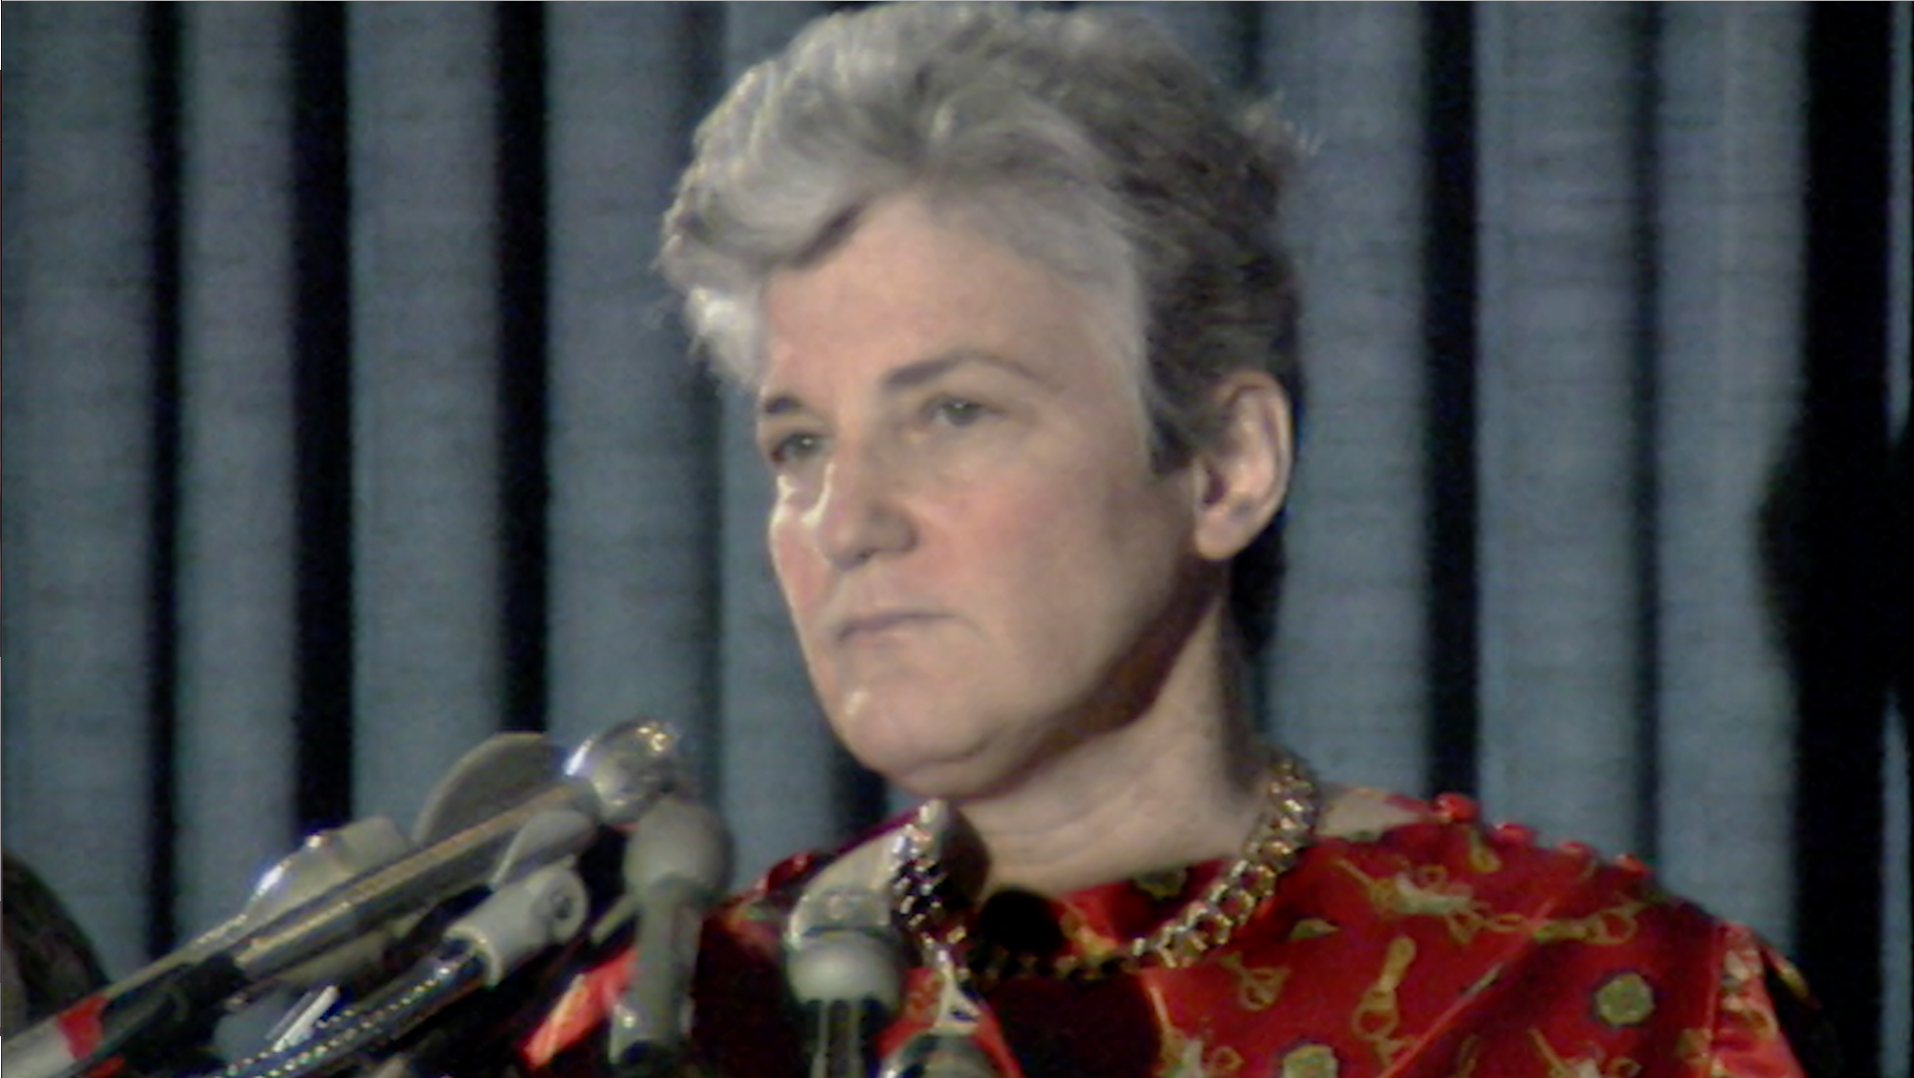 Lynne Abraham at a press conference, from archival news report, seen in Philly D.A.